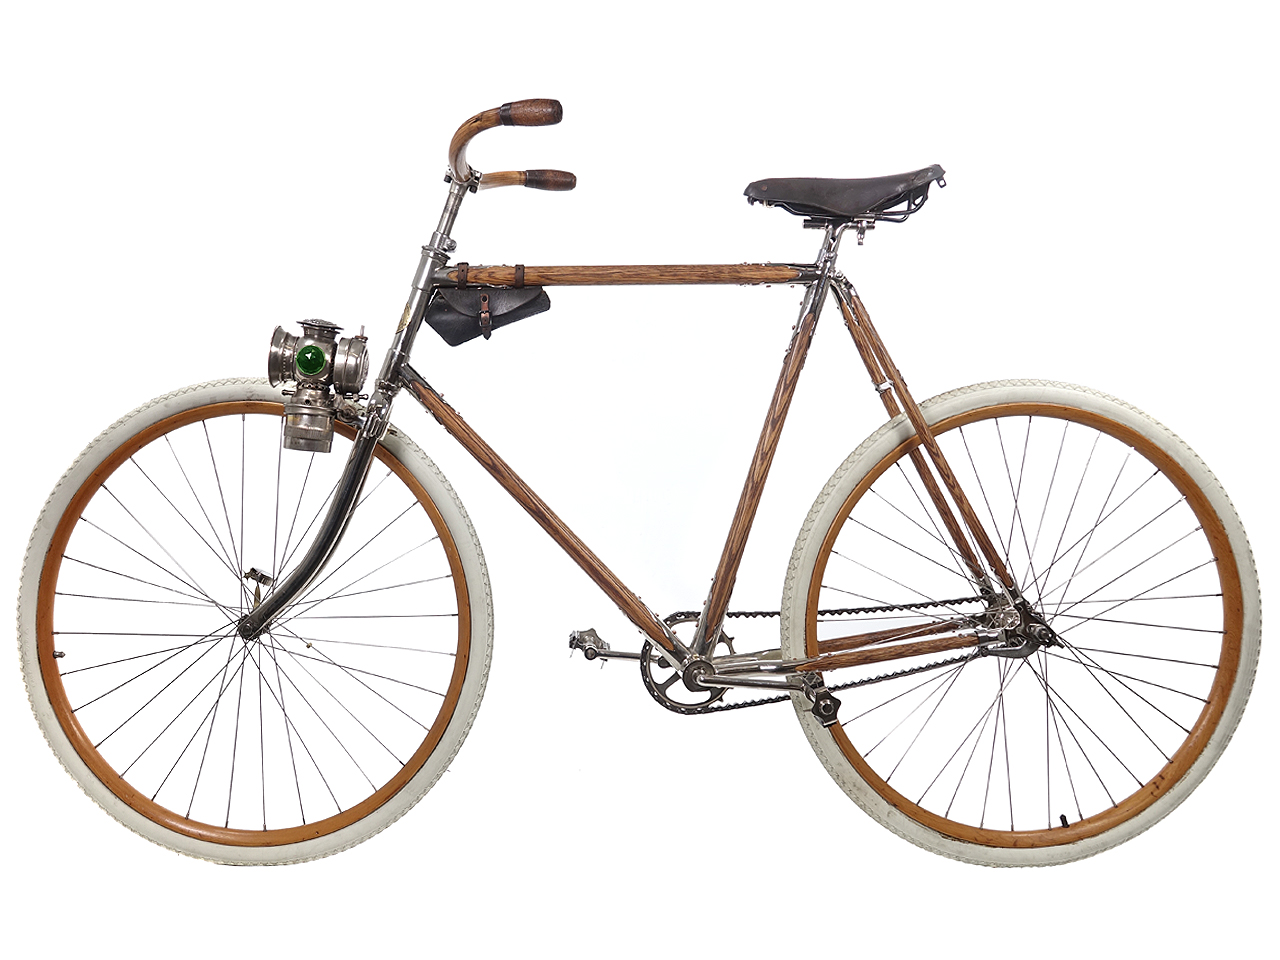 1890s Chilion Men's Wooden Frame Bicycle by M.D. Stebbins Mfg. Co.